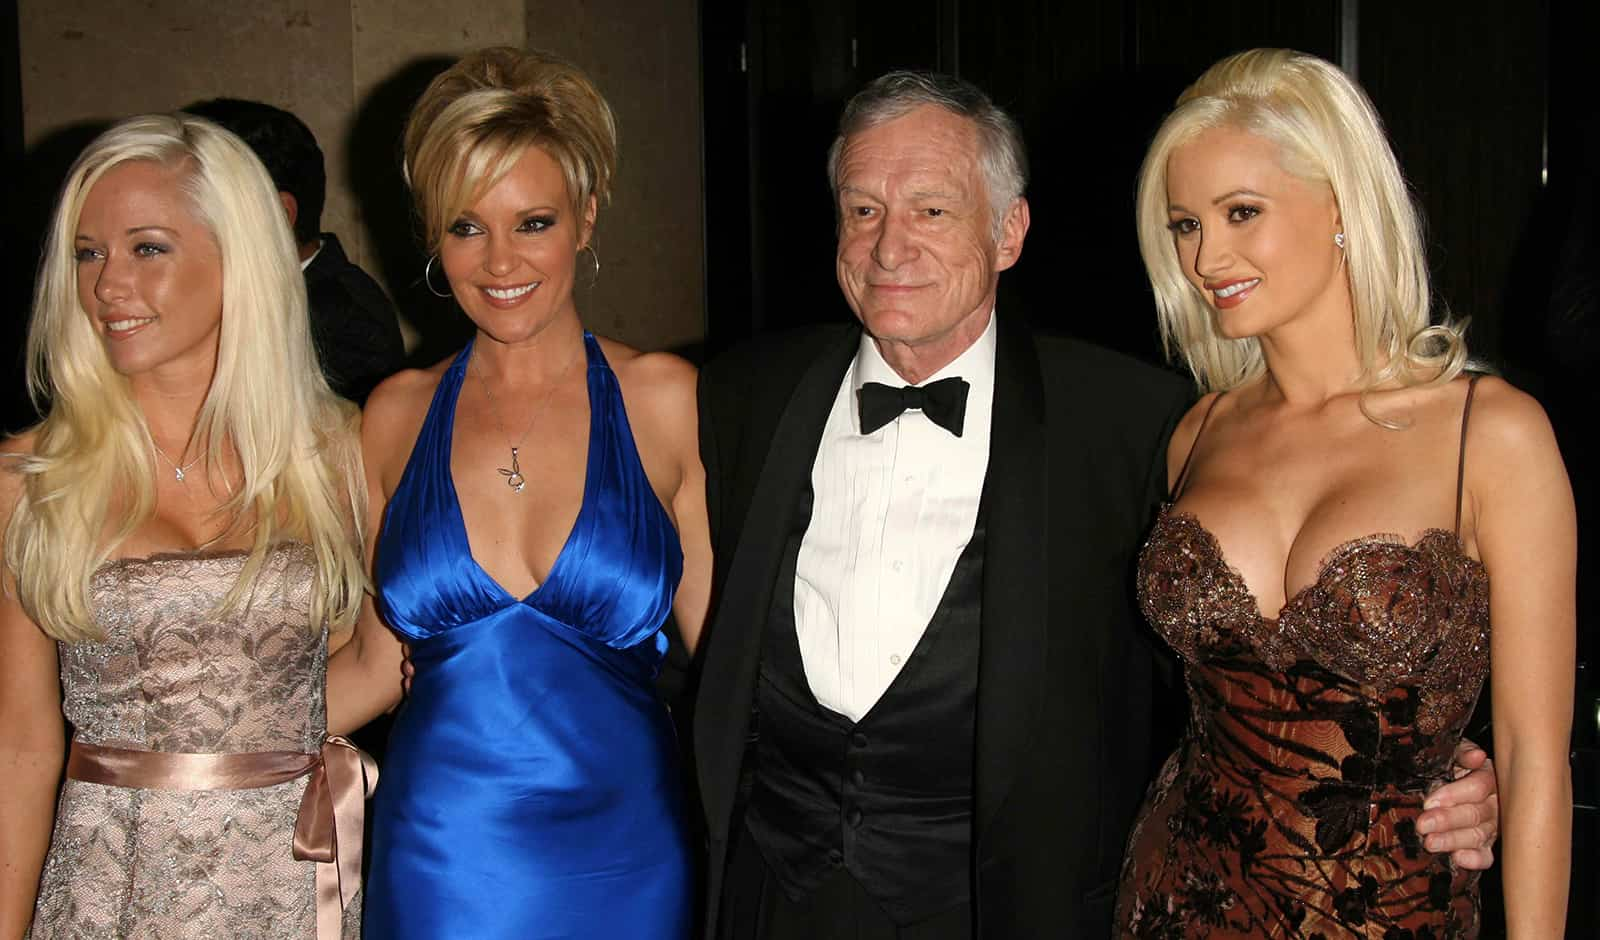 To Understand Hef, You Must Understand His History